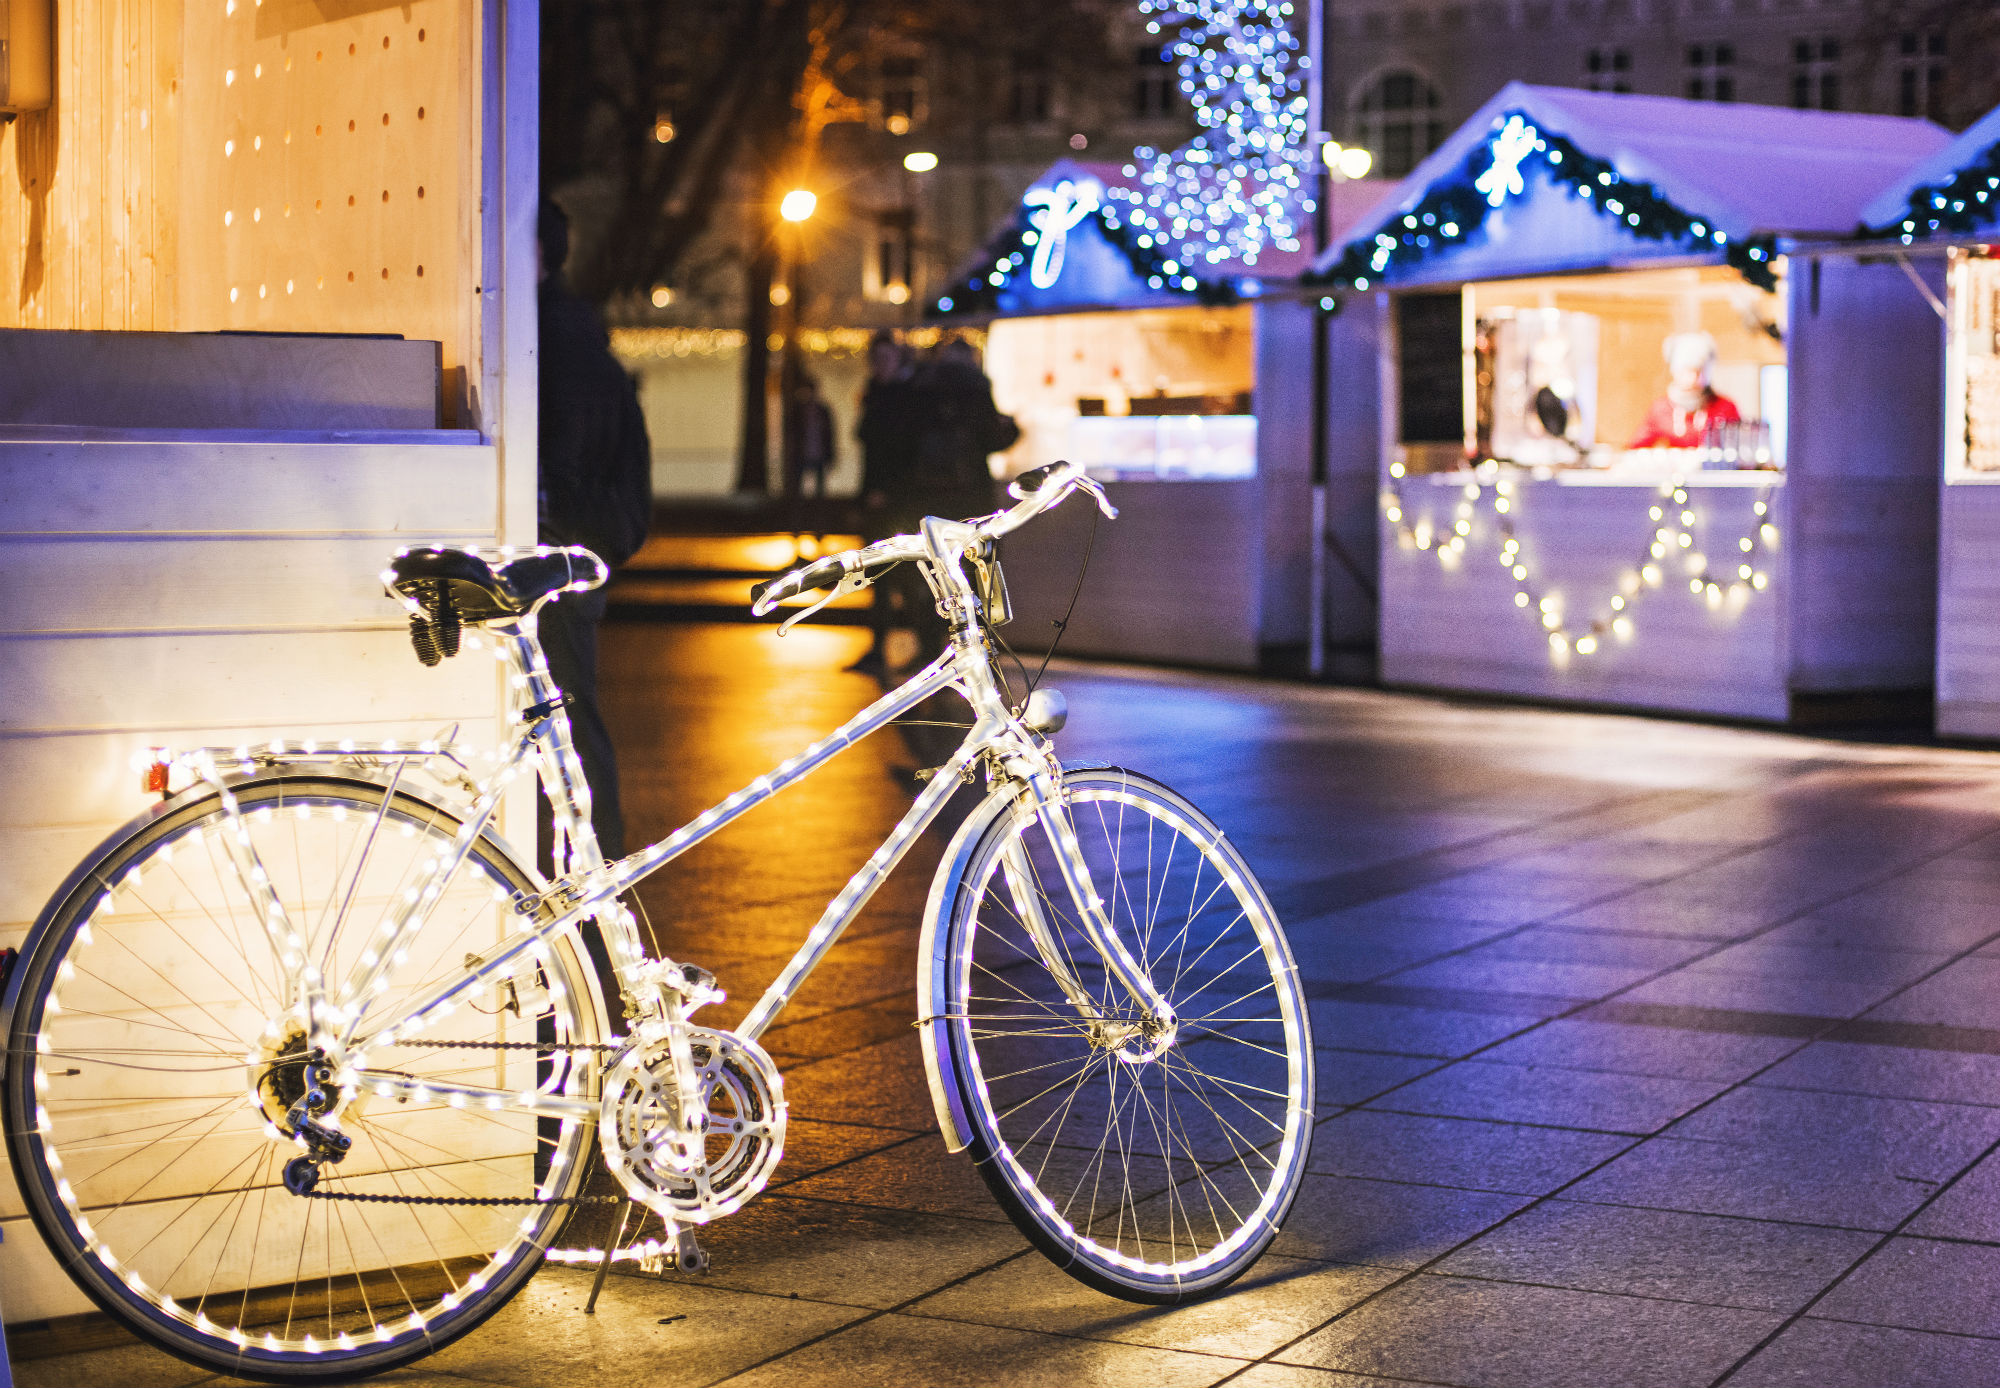 Photo of Une balade à vélo pour admirer les illuminations de Noël